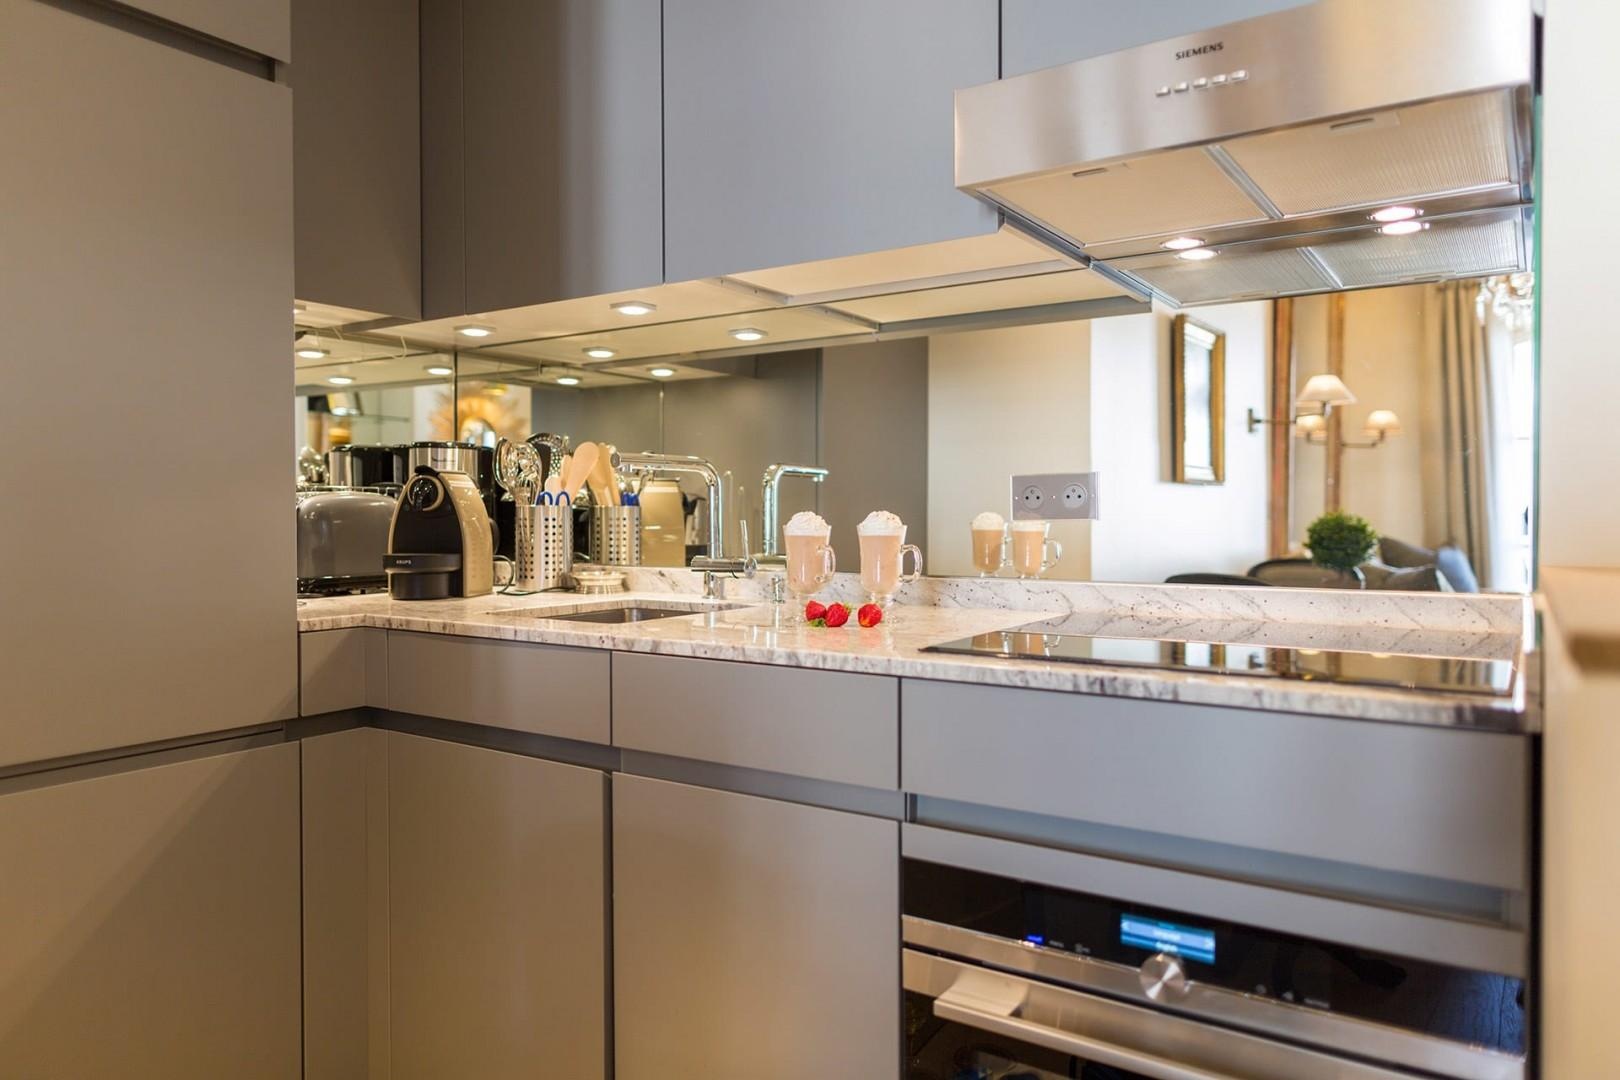 The modern kitchen is equipped with top-of-the-line appliances.